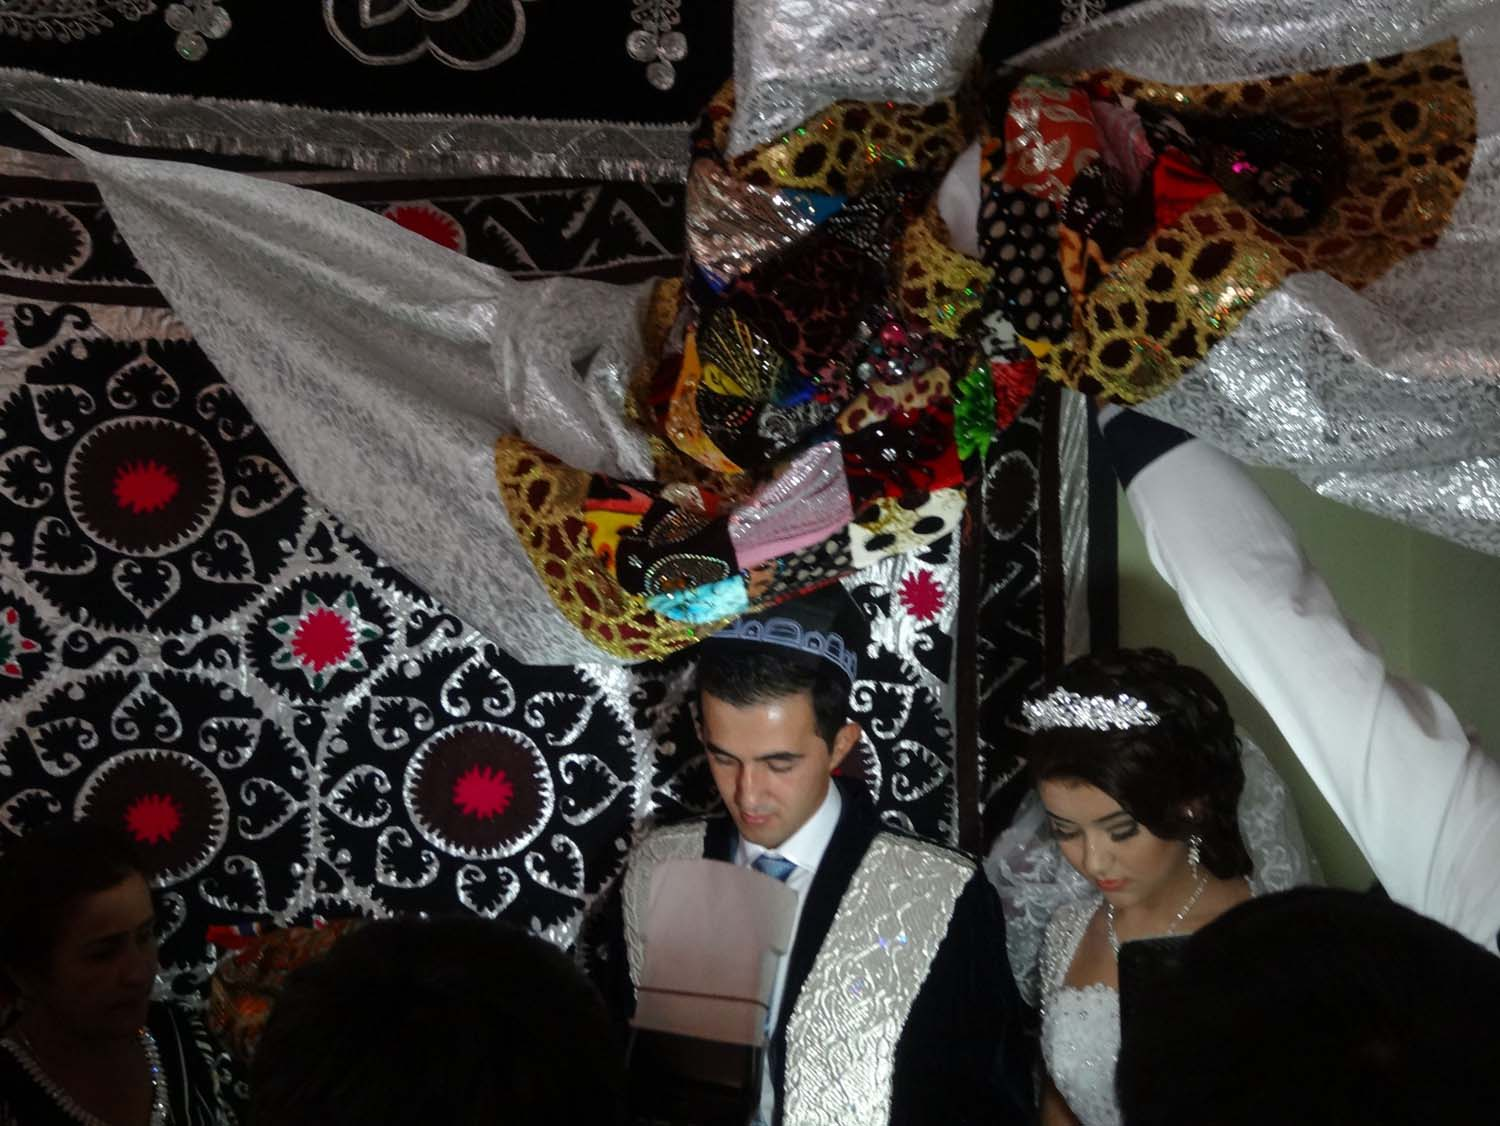 the wedding ceremony for a very young couple